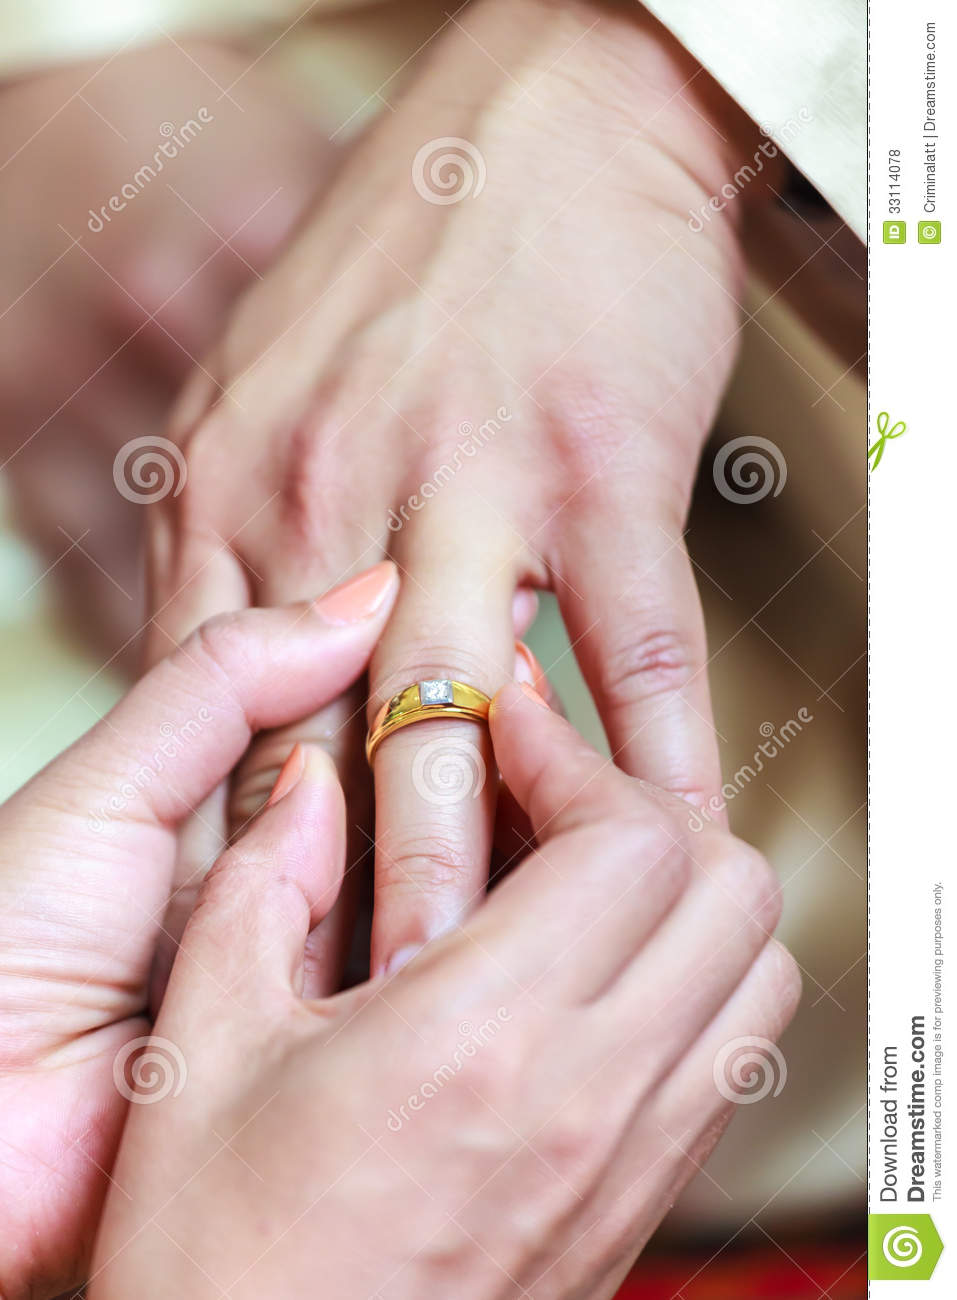 Bride Wearing Ring On Groom\'s Finger Stock Photo - Image of people ...